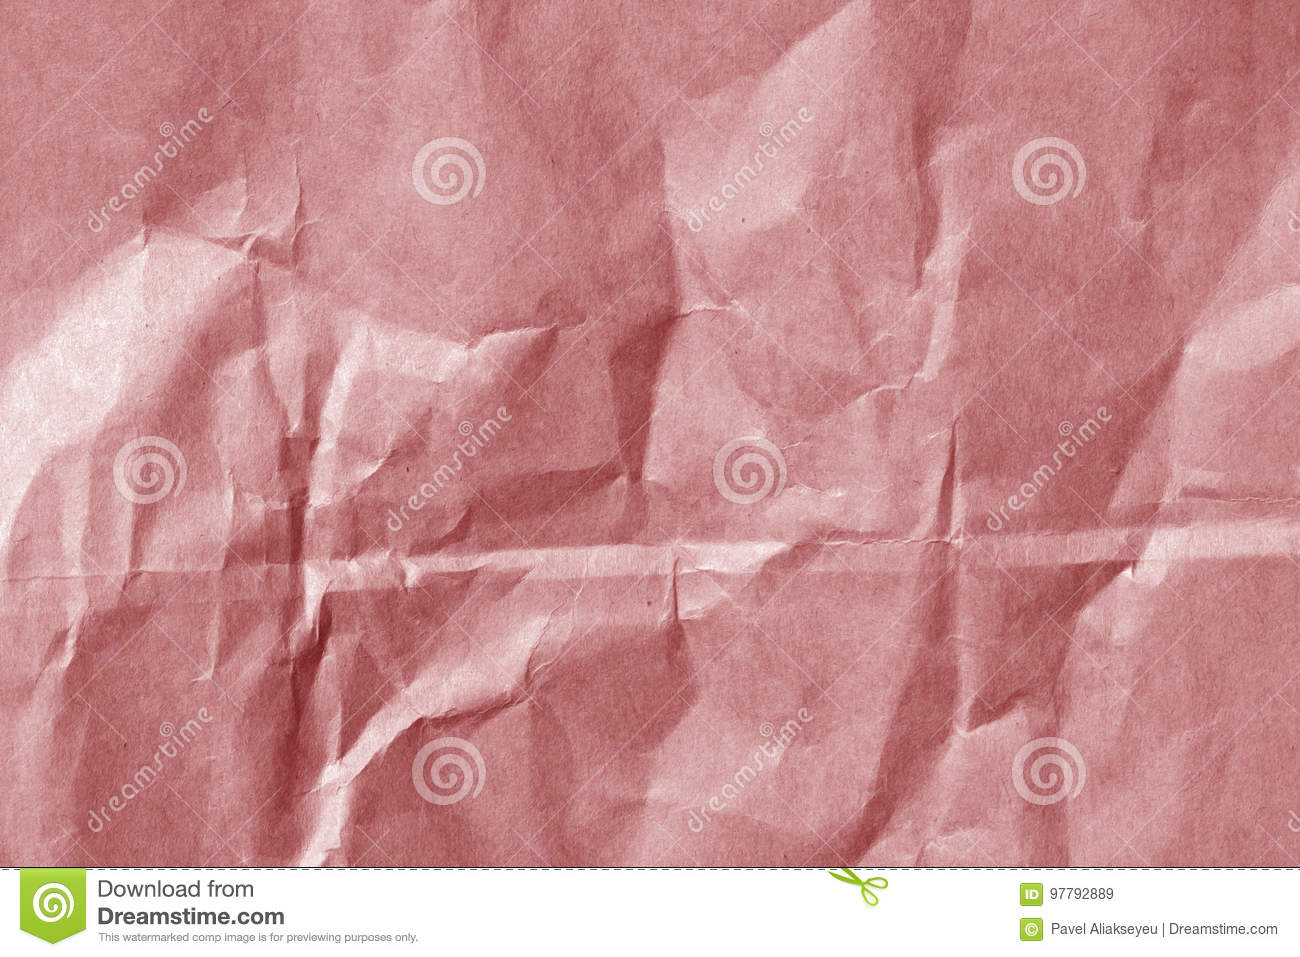 Red Color Paper Sheet Surface With Wrinckles. Stock Image - Image of ...